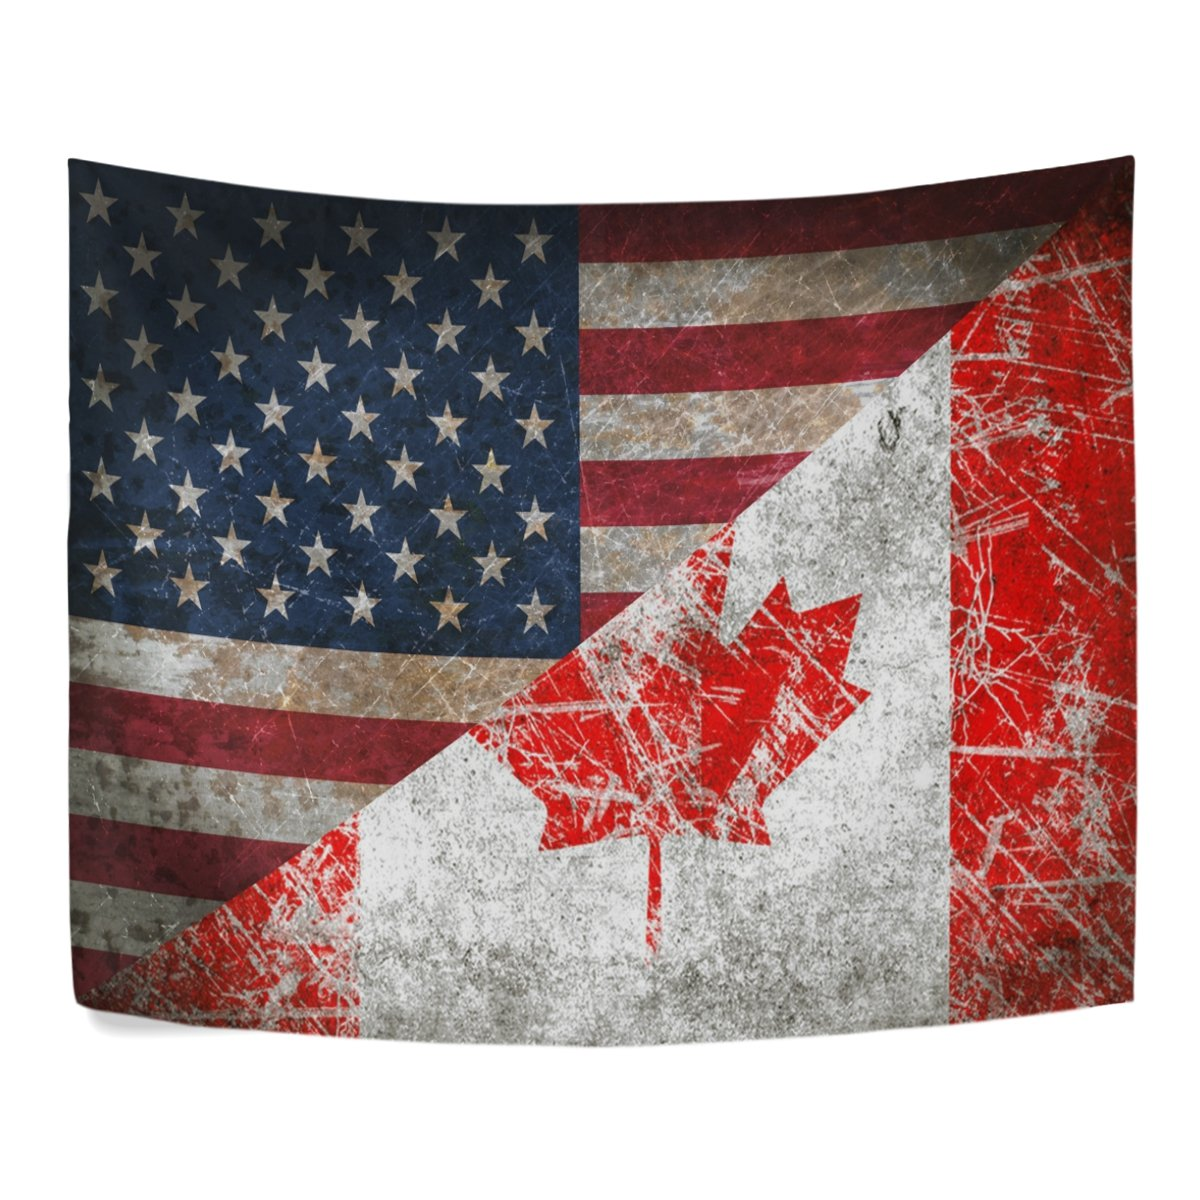 Retro Maple Leaf Canada and America Flag Friendship Combination Polyester House Tapestries Room Décor 90x60 Inch Style Decorative Wall Blanket